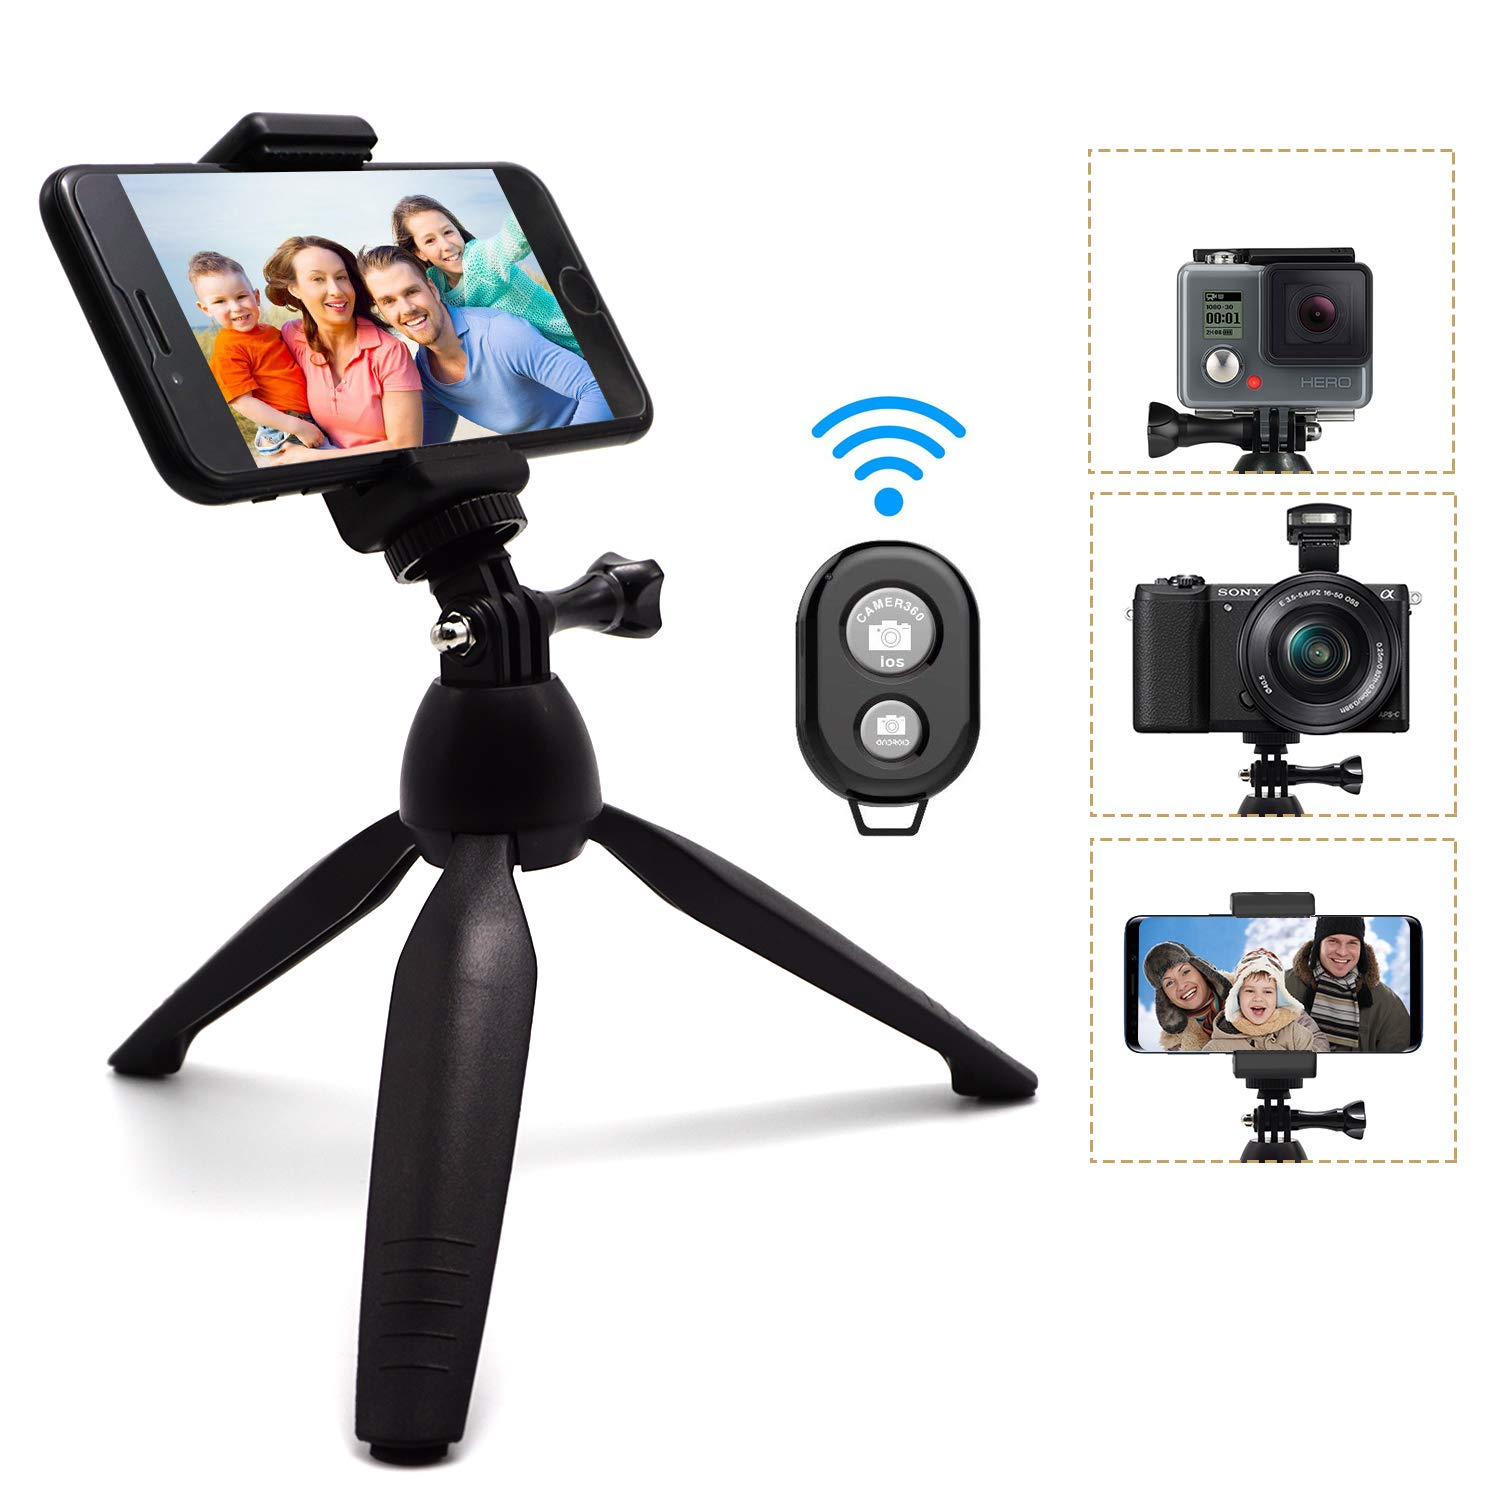 Phone Tripod, SYOSIN Mini Camera Tripod Selfie Stick Mini Tabletop Travel Stand Adjustable Camera Stand Holder with Wireless Remote Shutter and Universal Clip for DSLR, Gopro, Samsung, iPhone, More by SYOSIN